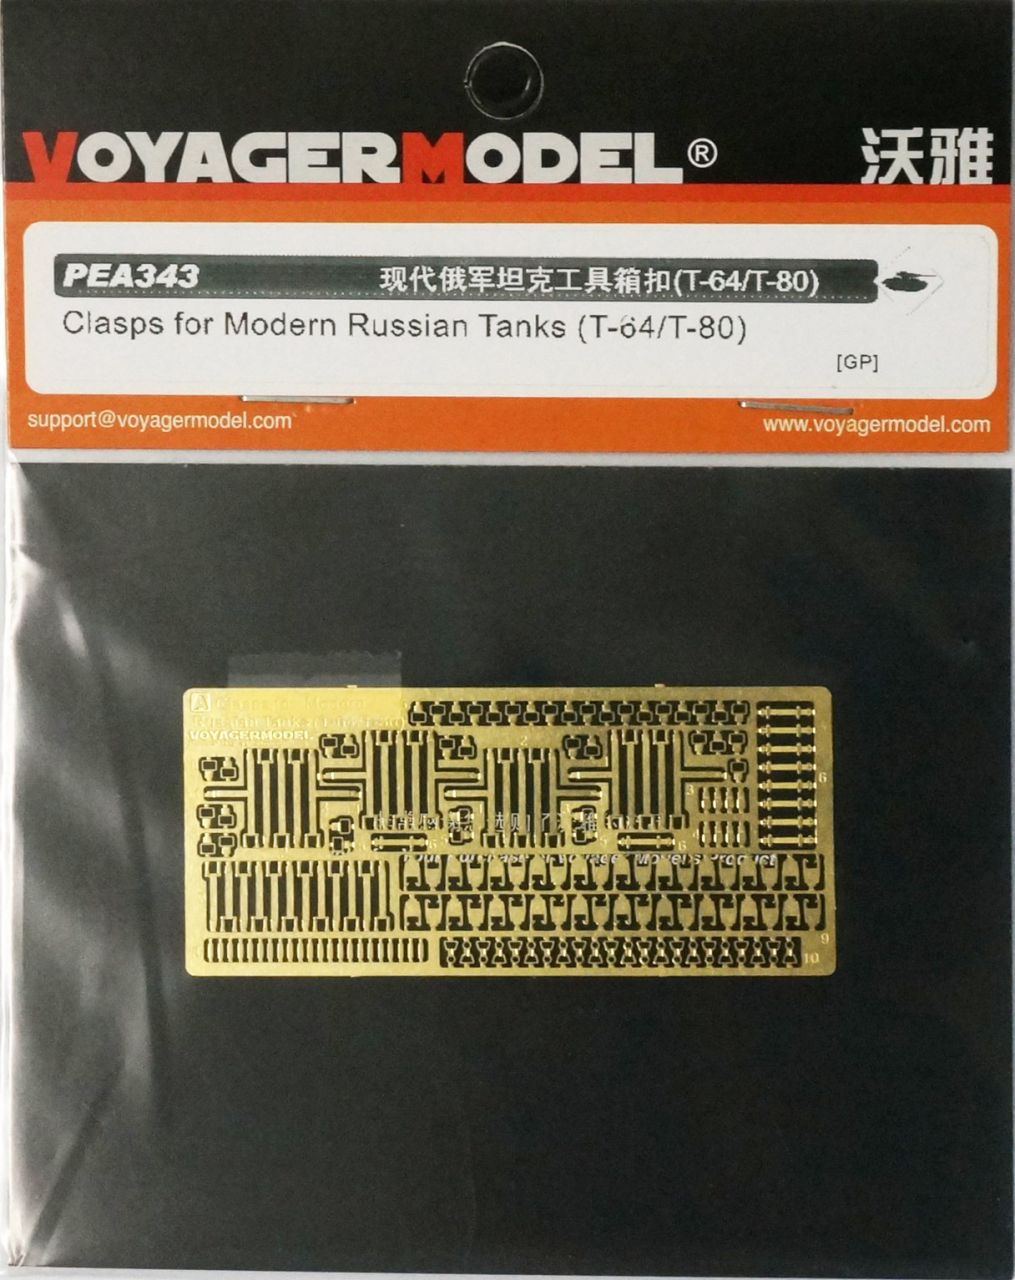 Voyager Model PEA343 Clasps for Modern Russian Tanks (T-64/T-80)